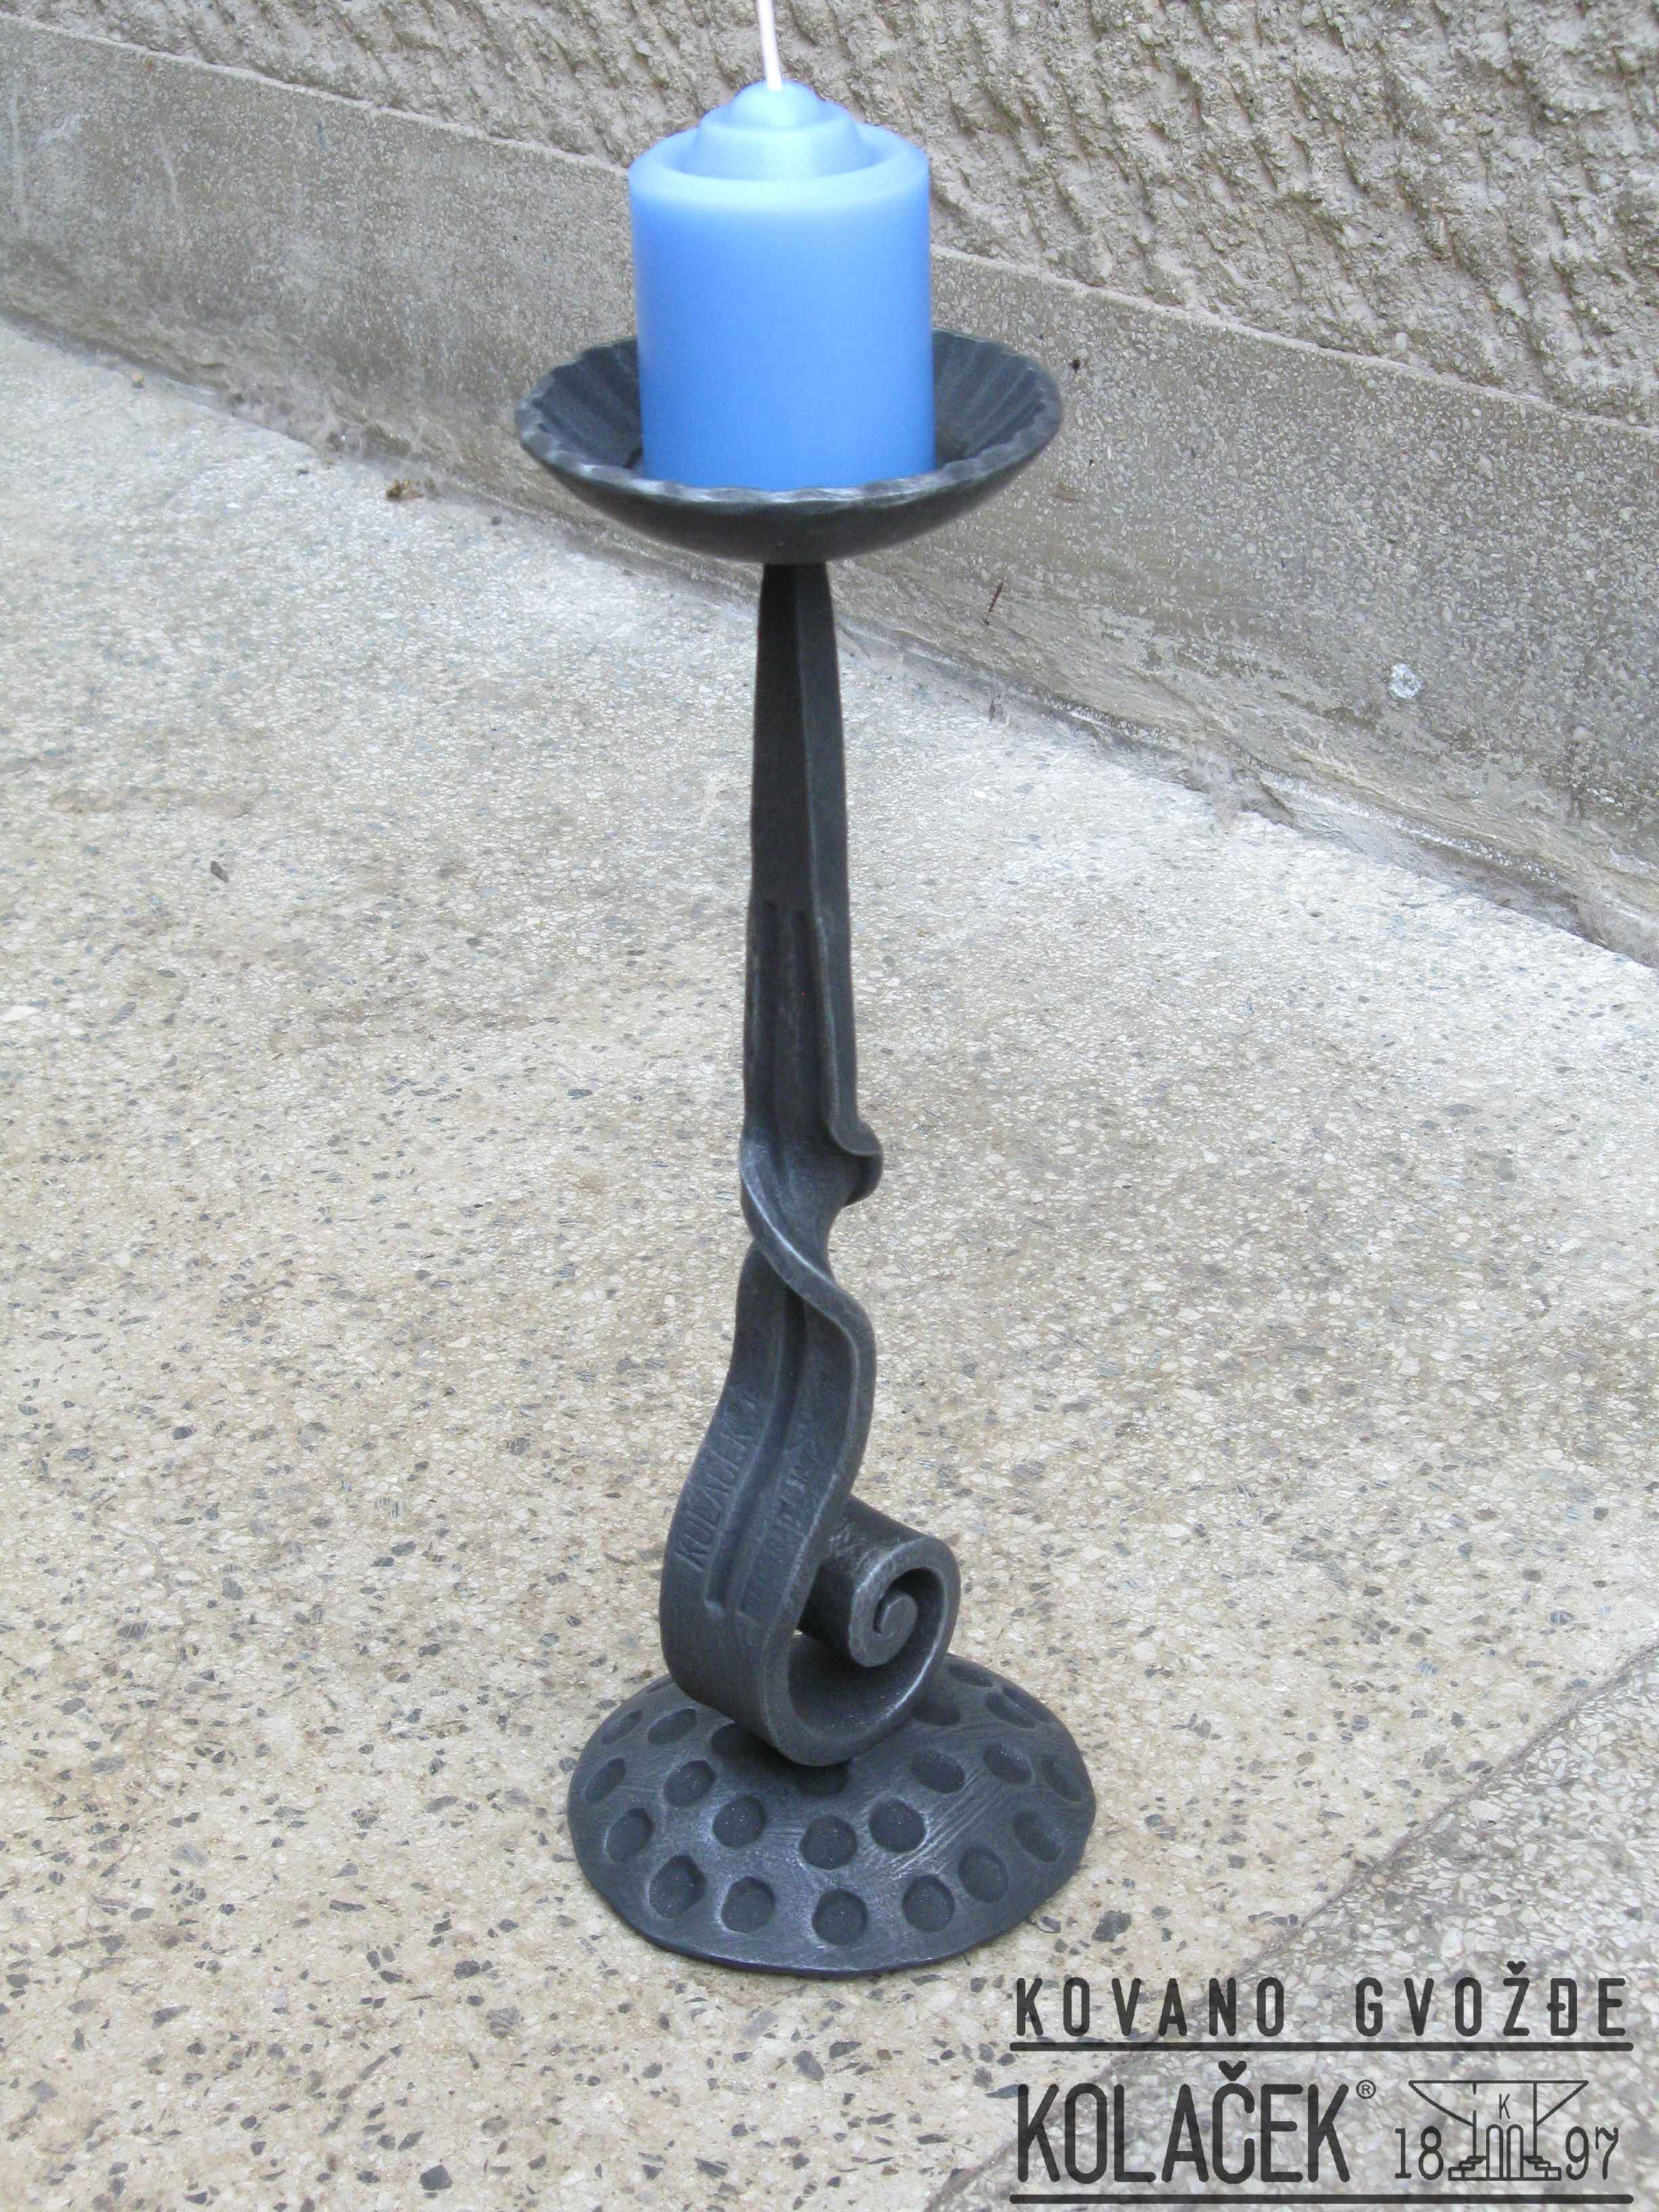 Tall Vases In Bulk Of Candle Stands wholesale 2019 Svecnjak Od Kovanog Gvozdja Kolacek Intended for Candle Stands wholesale 2019 Svecnjak Od Kovanog Gvozdja Kolacek 1897 Steel From Candle Holder